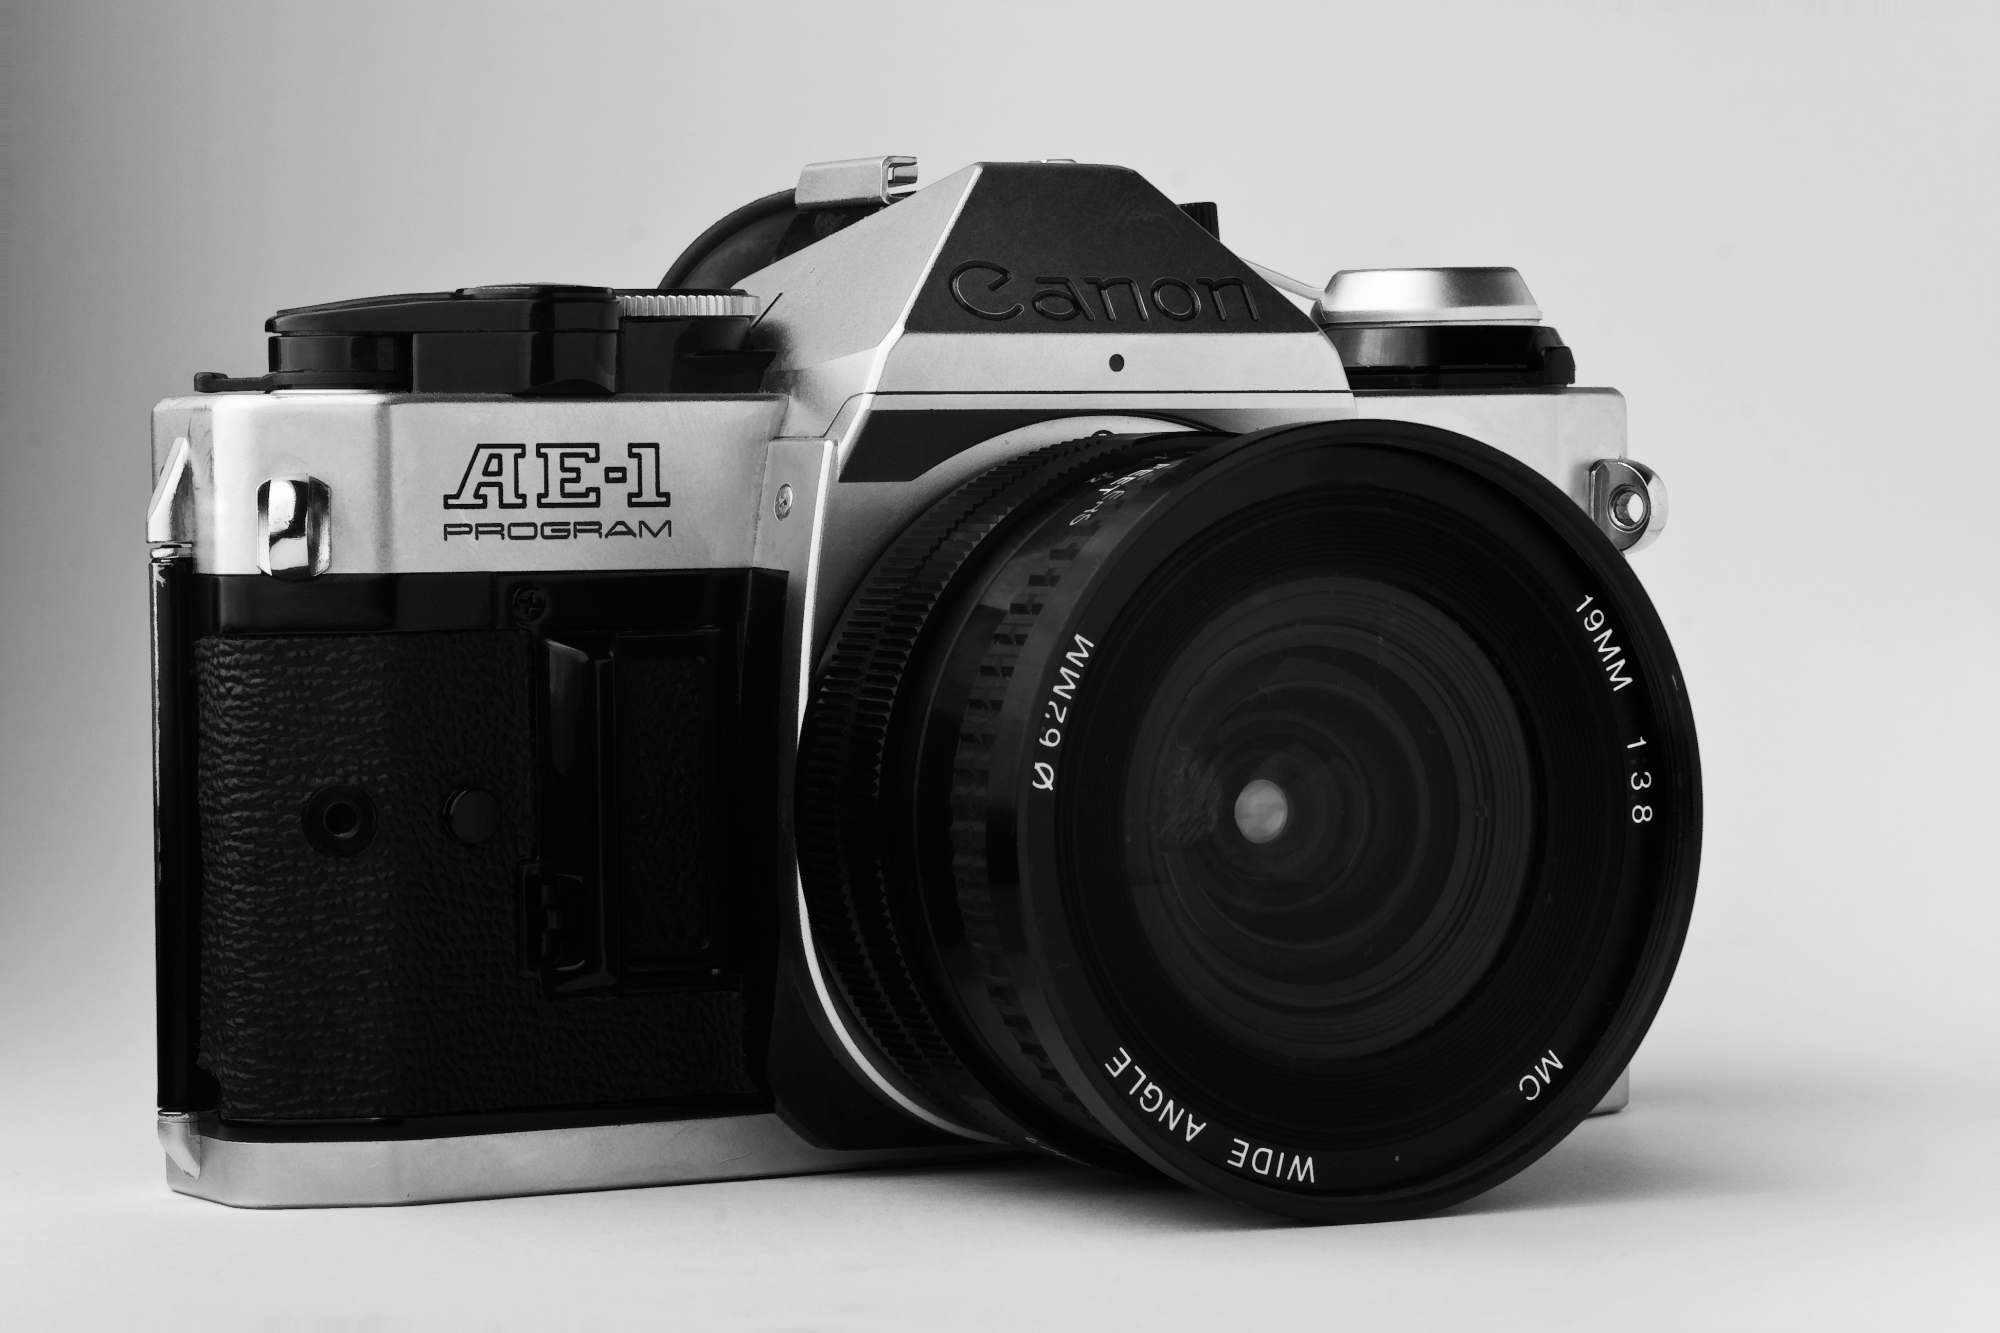 Canon AE-1P Film Camera